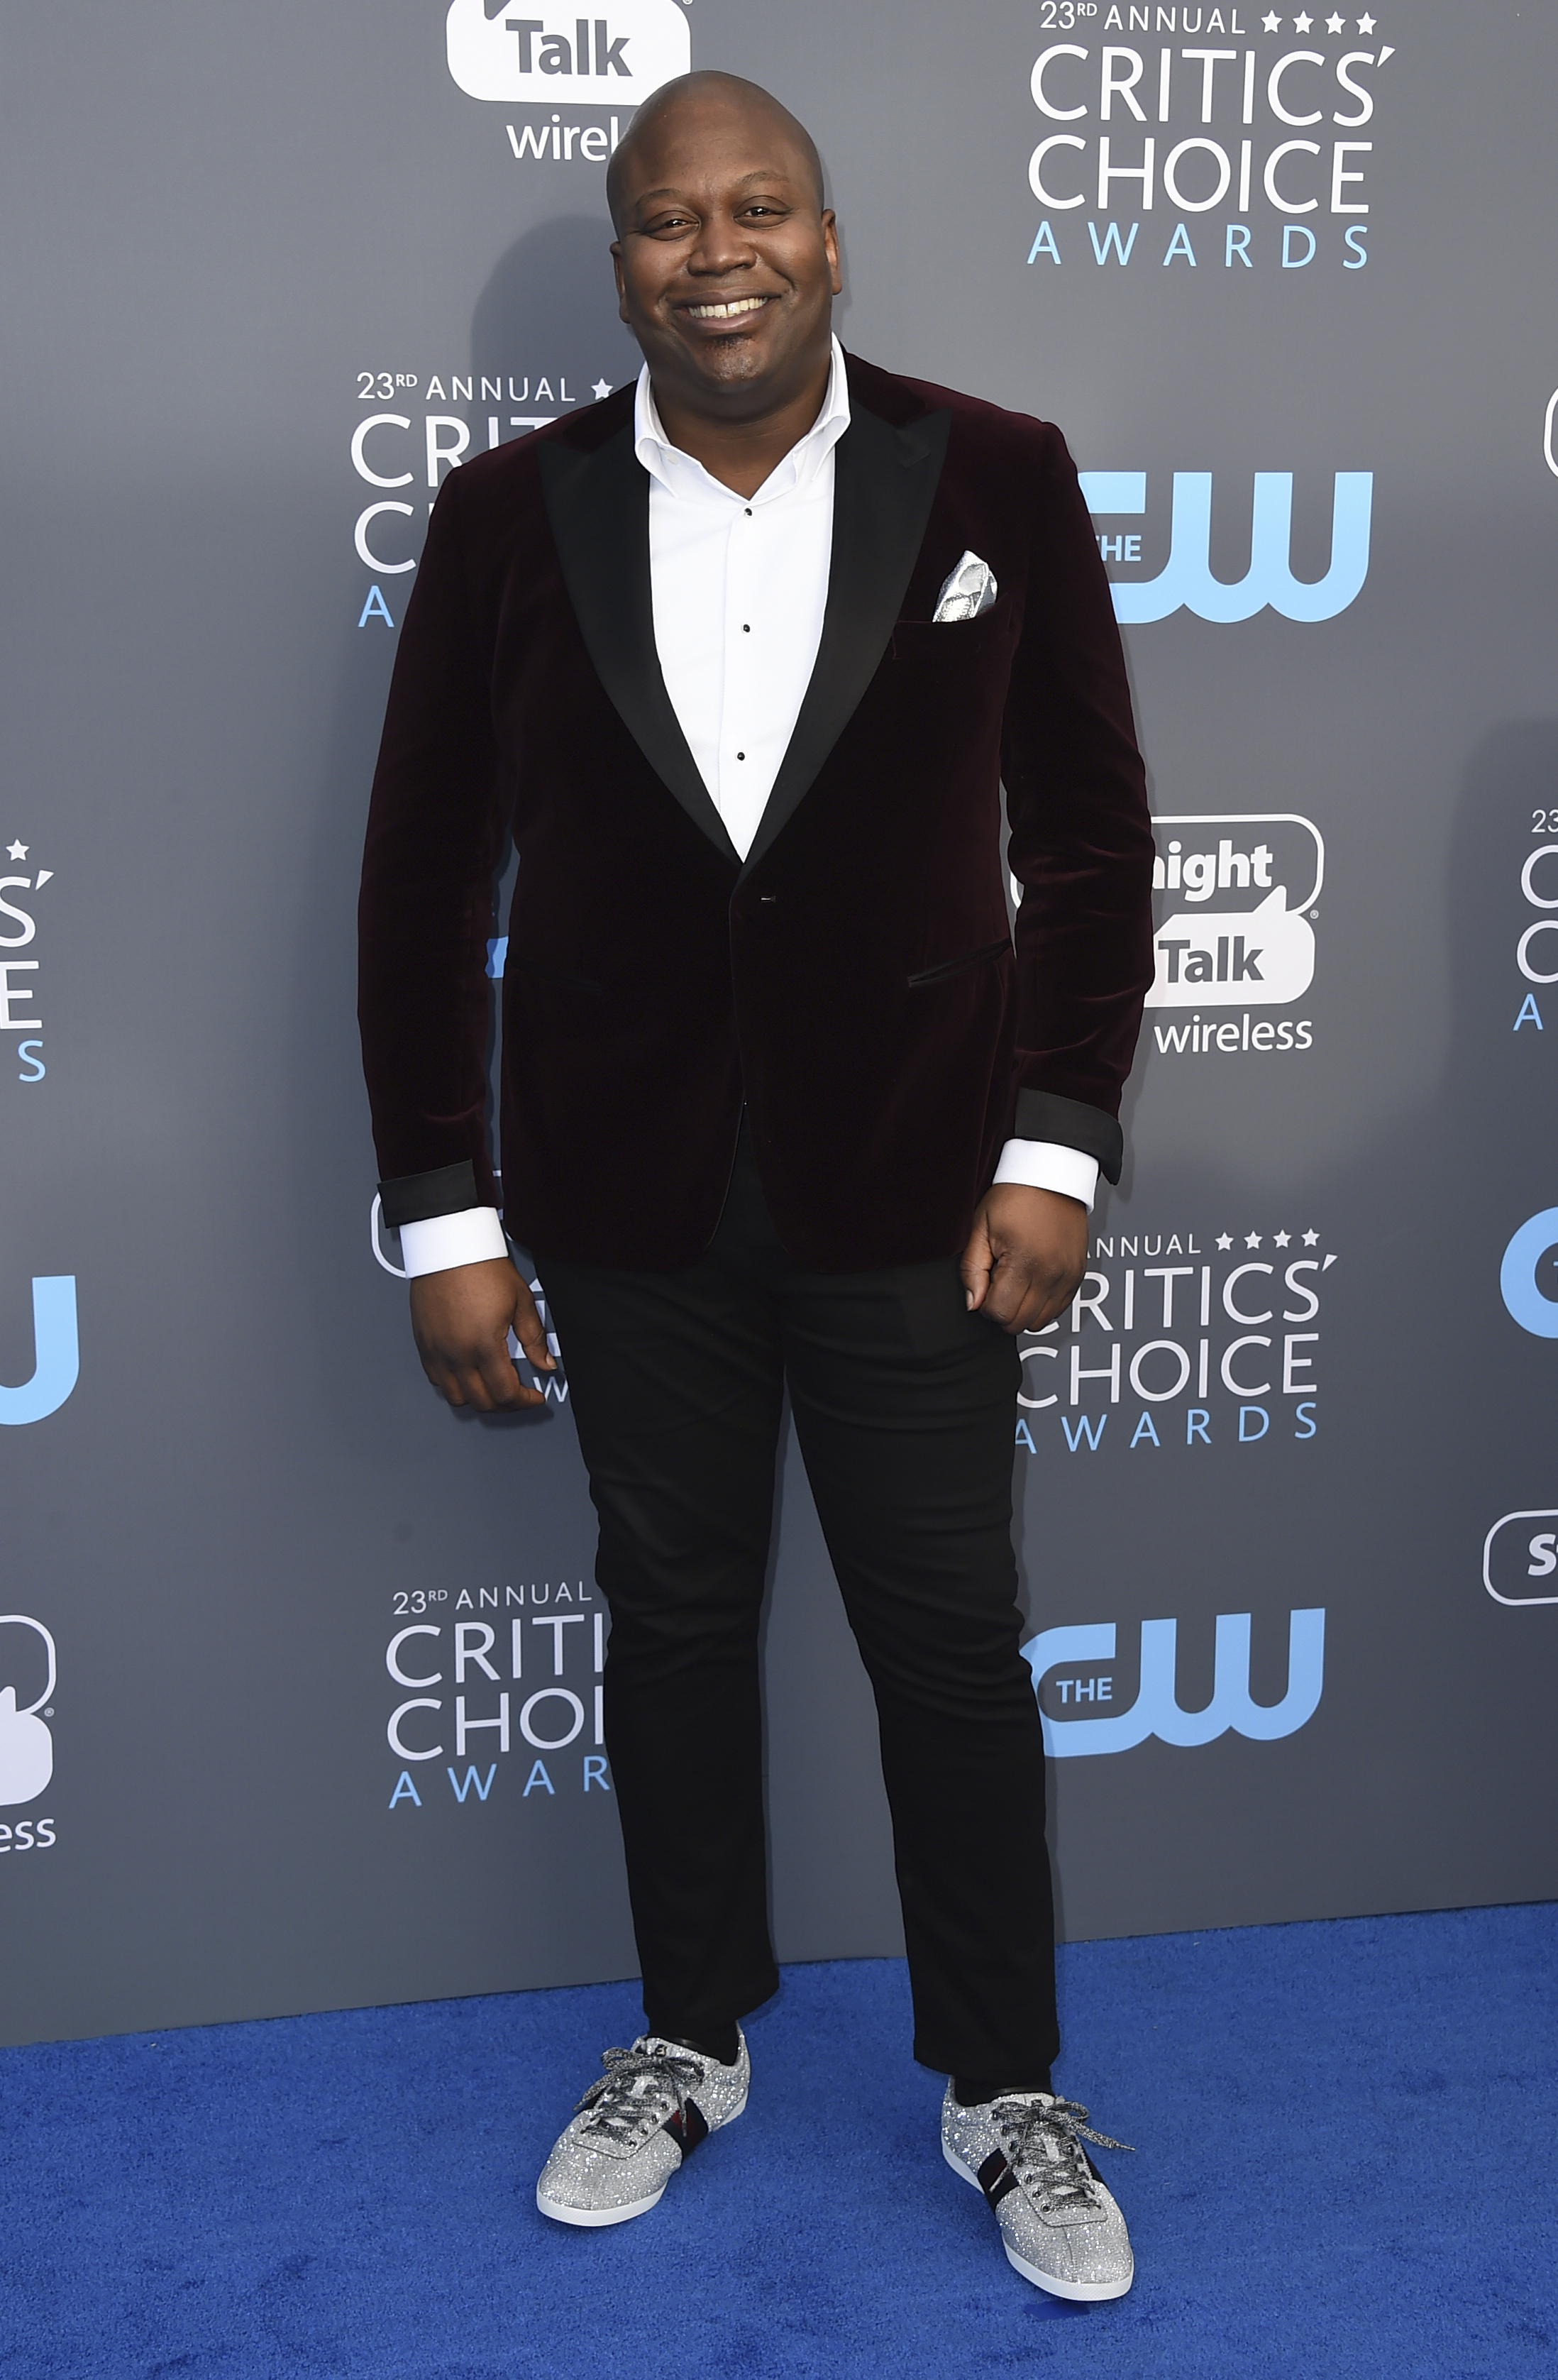 <div class='meta'><div class='origin-logo' data-origin='AP'></div><span class='caption-text' data-credit='Jordan Strauss/Invision/AP'>Tituss Burgess arrives at the 23rd annual Critics' Choice Awards at the Barker Hangar on Thursday, Jan. 11, 2018, in Santa Monica, Calif.</span></div>